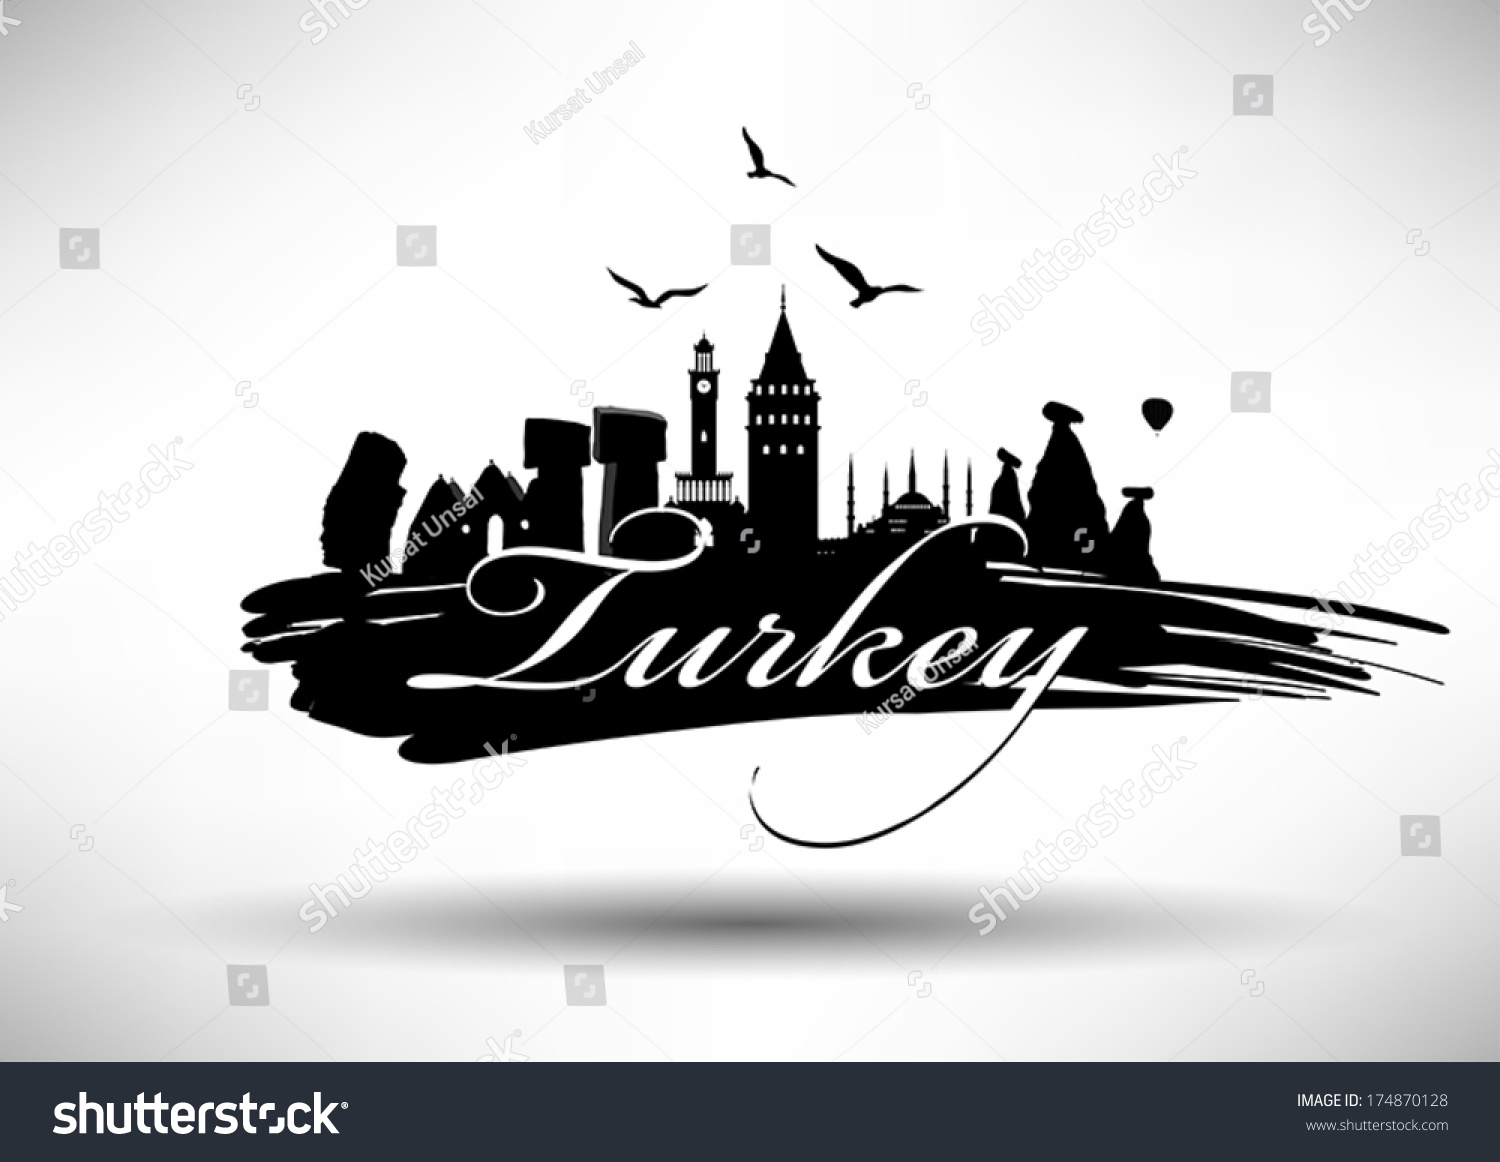 Turkeys landmark design stock vector 174870128 shutterstock for Landmark design